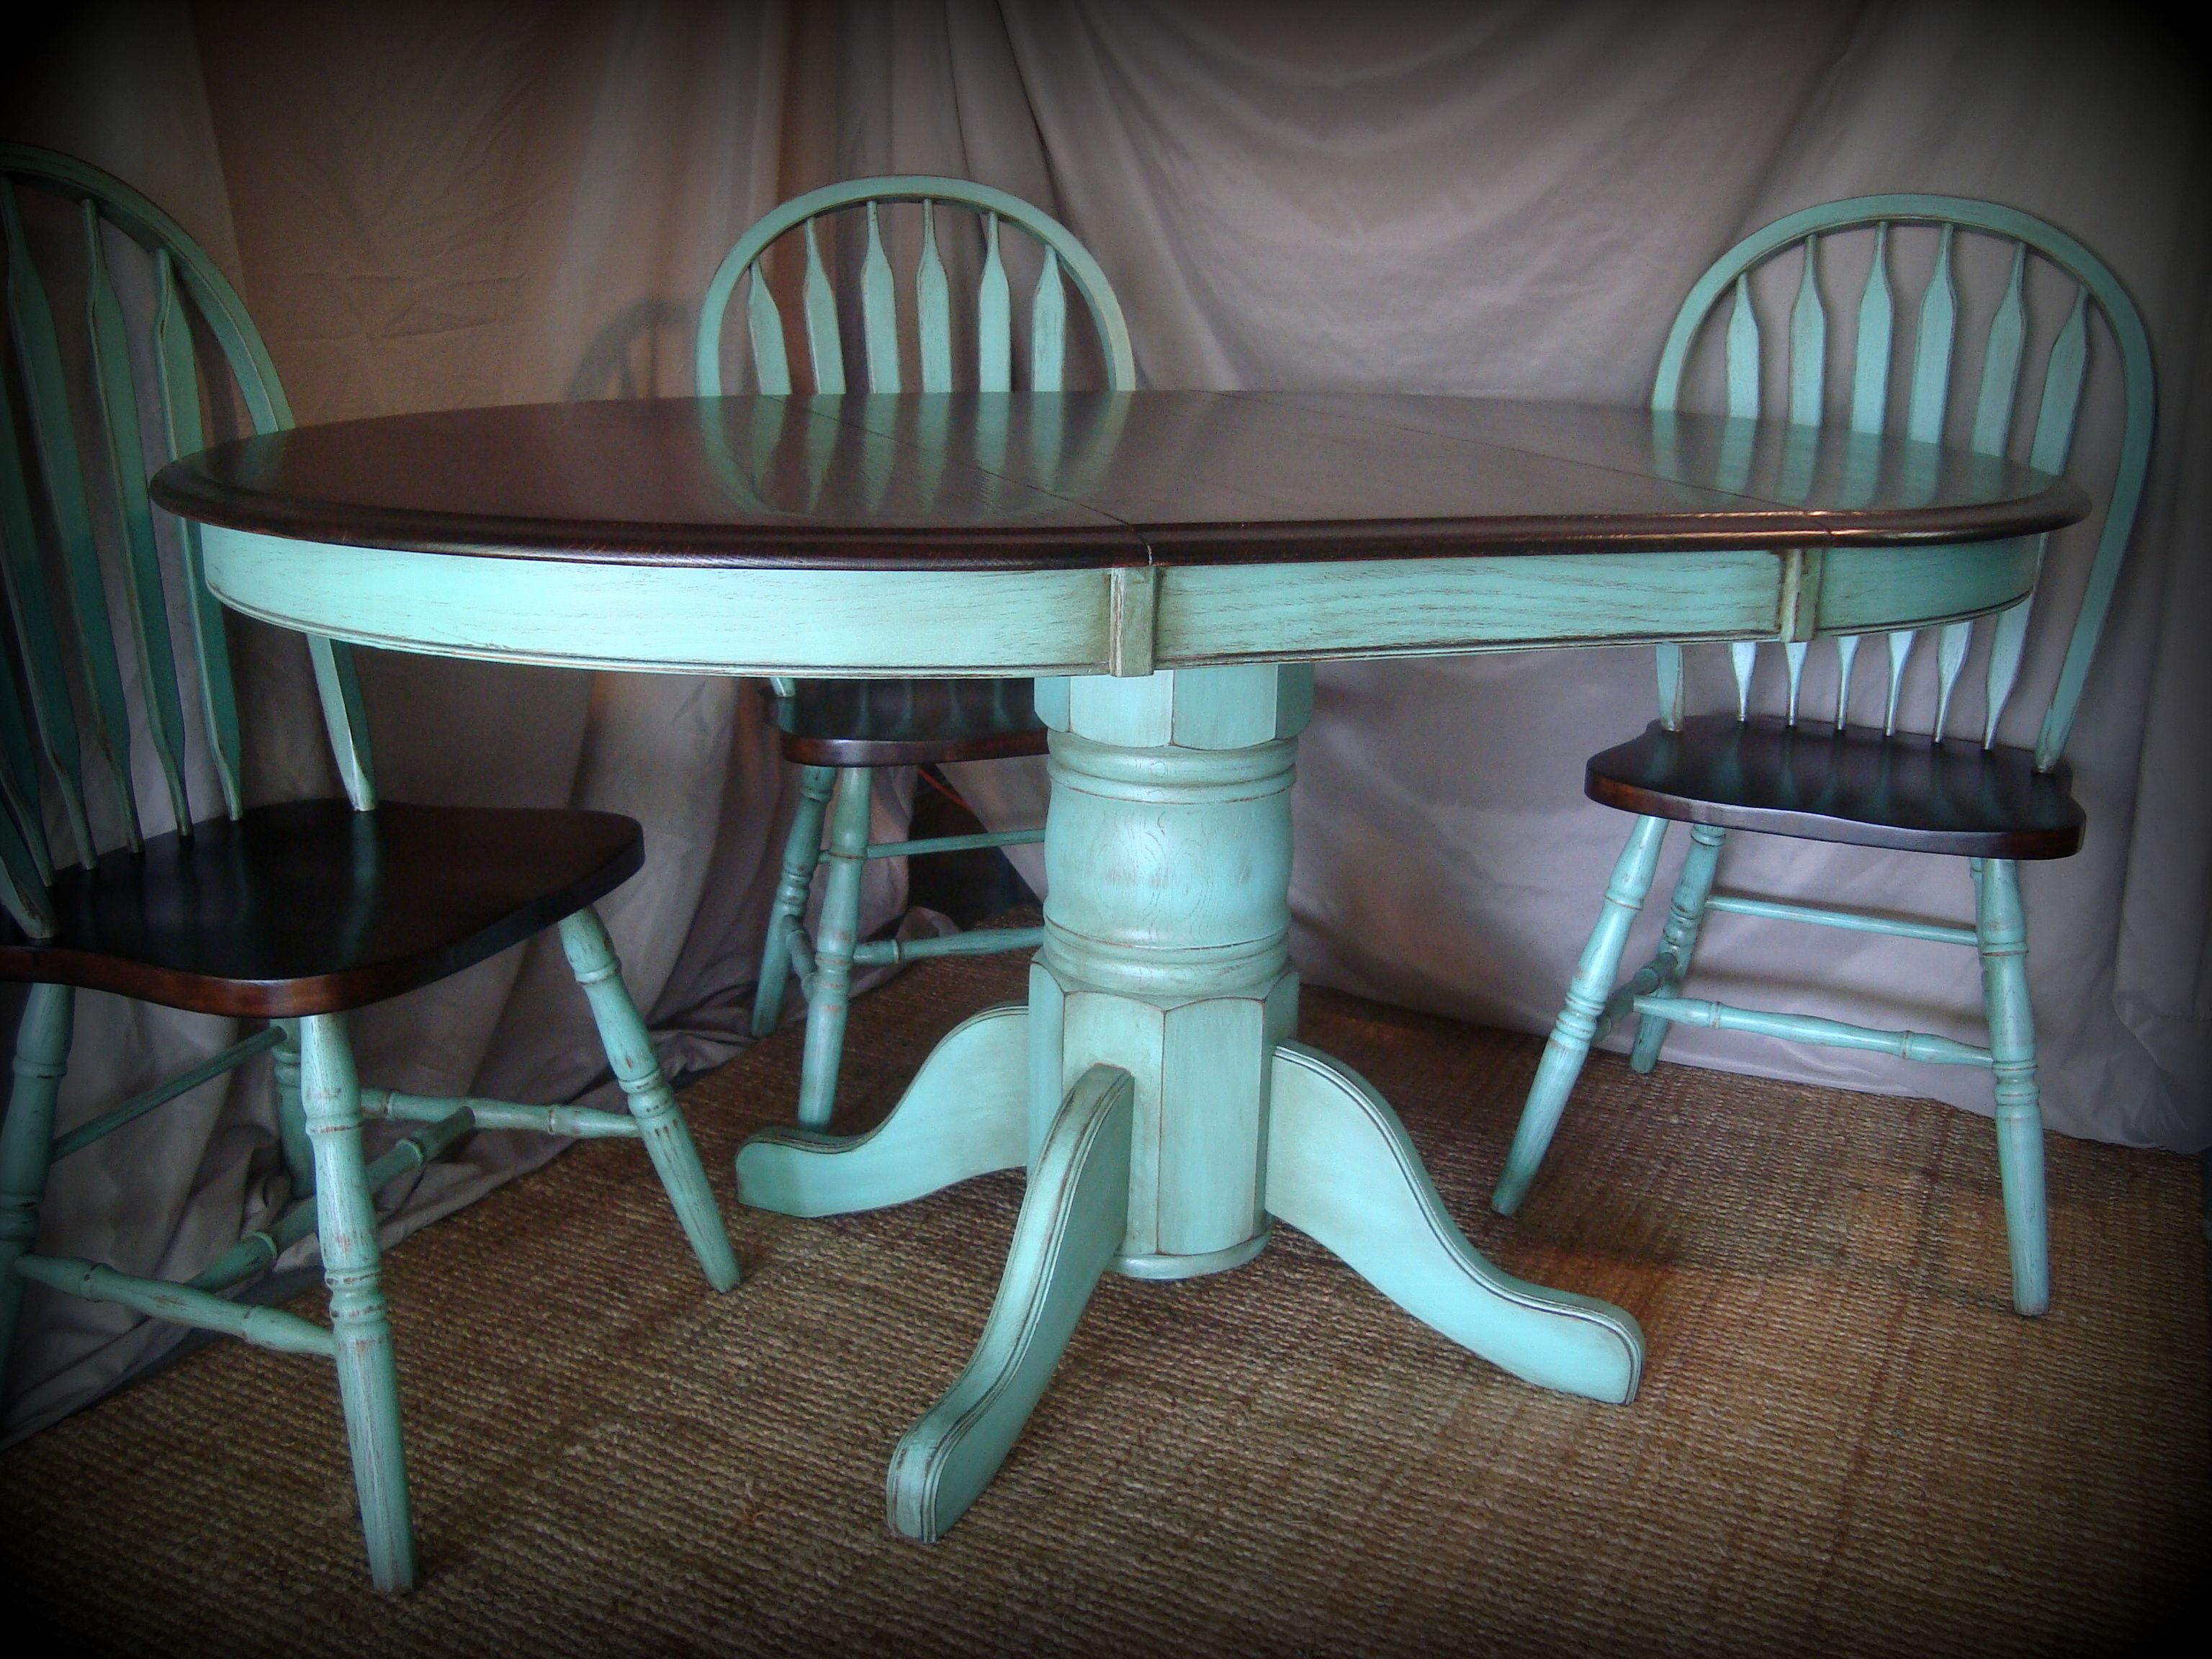 Table Painting Designs Kitchen Table Refinishing Ideas Pictures Stained The